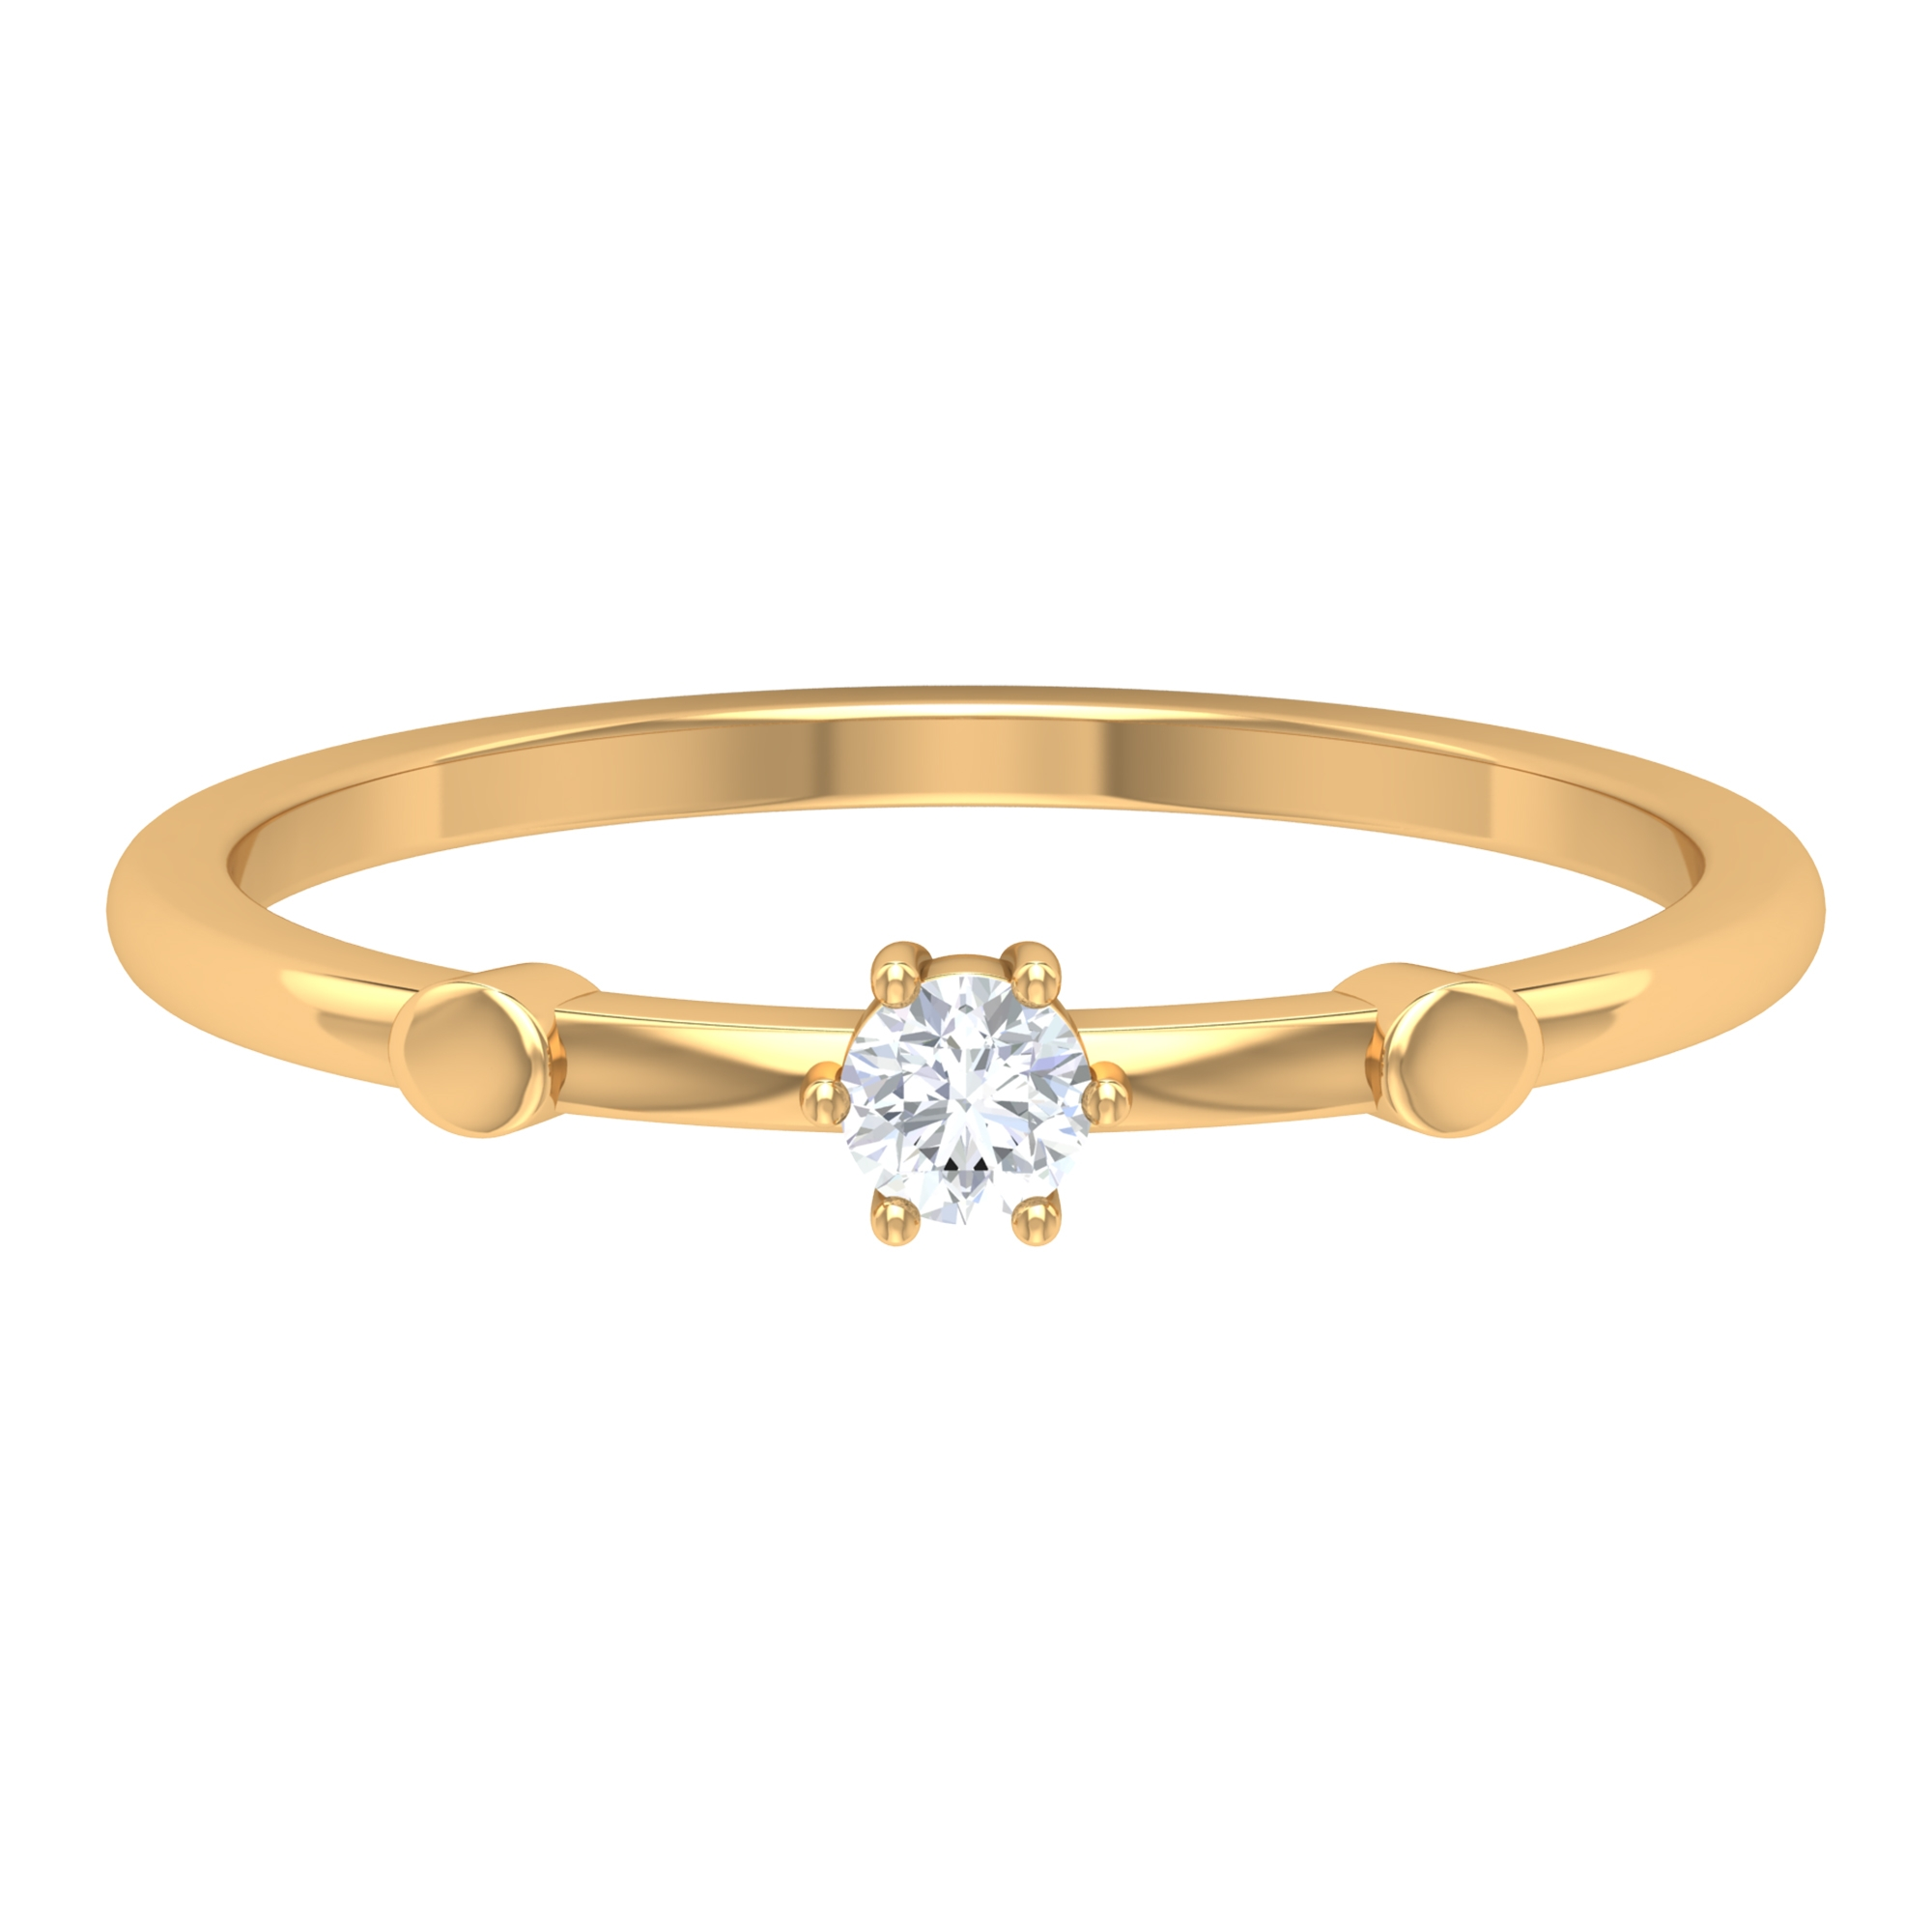 Solitaire Diamond Dainty Ring in 6 Prong Setting